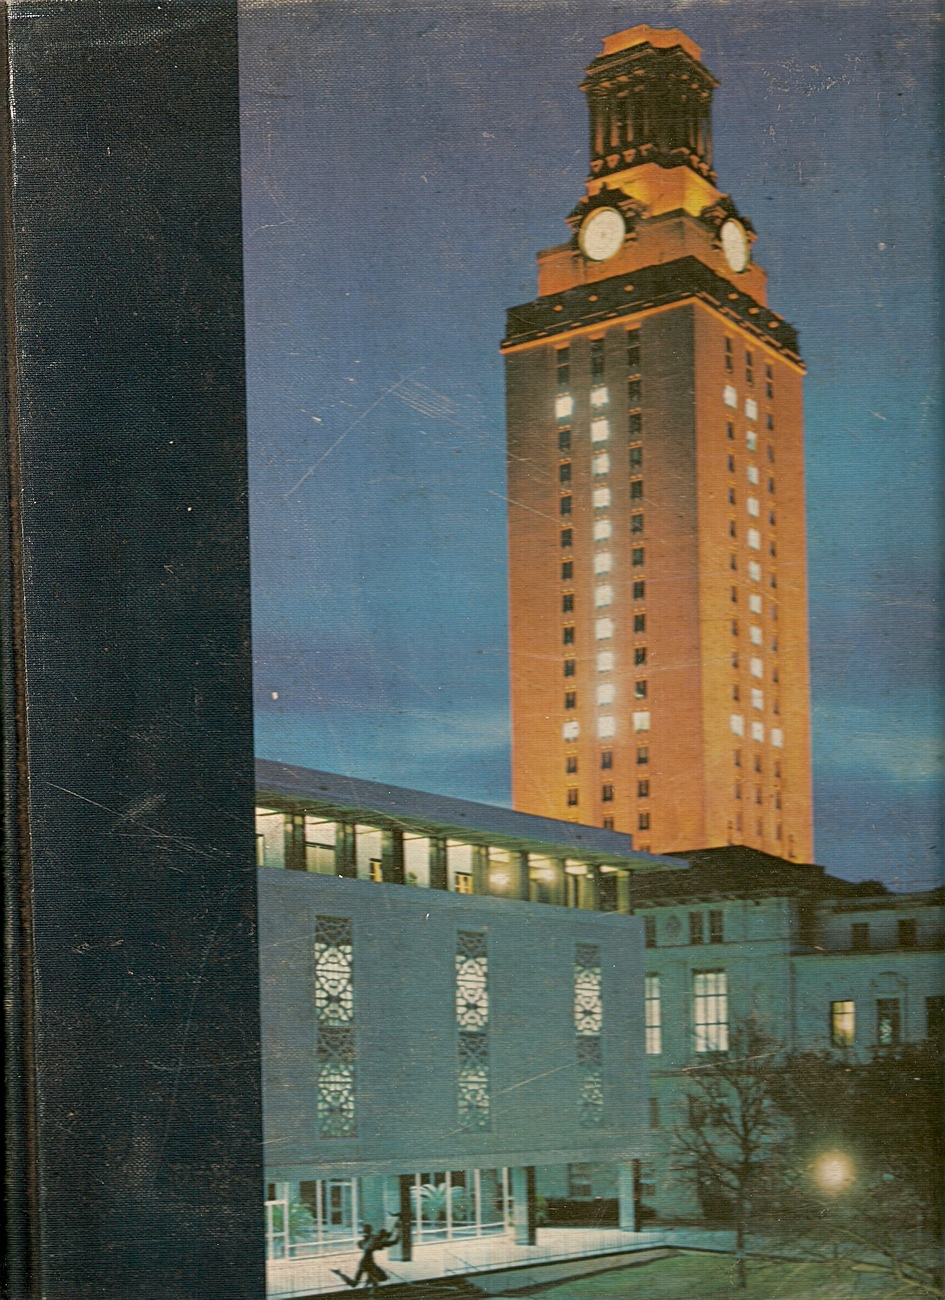 1964 University of Texas Cactus National Champion Year Book